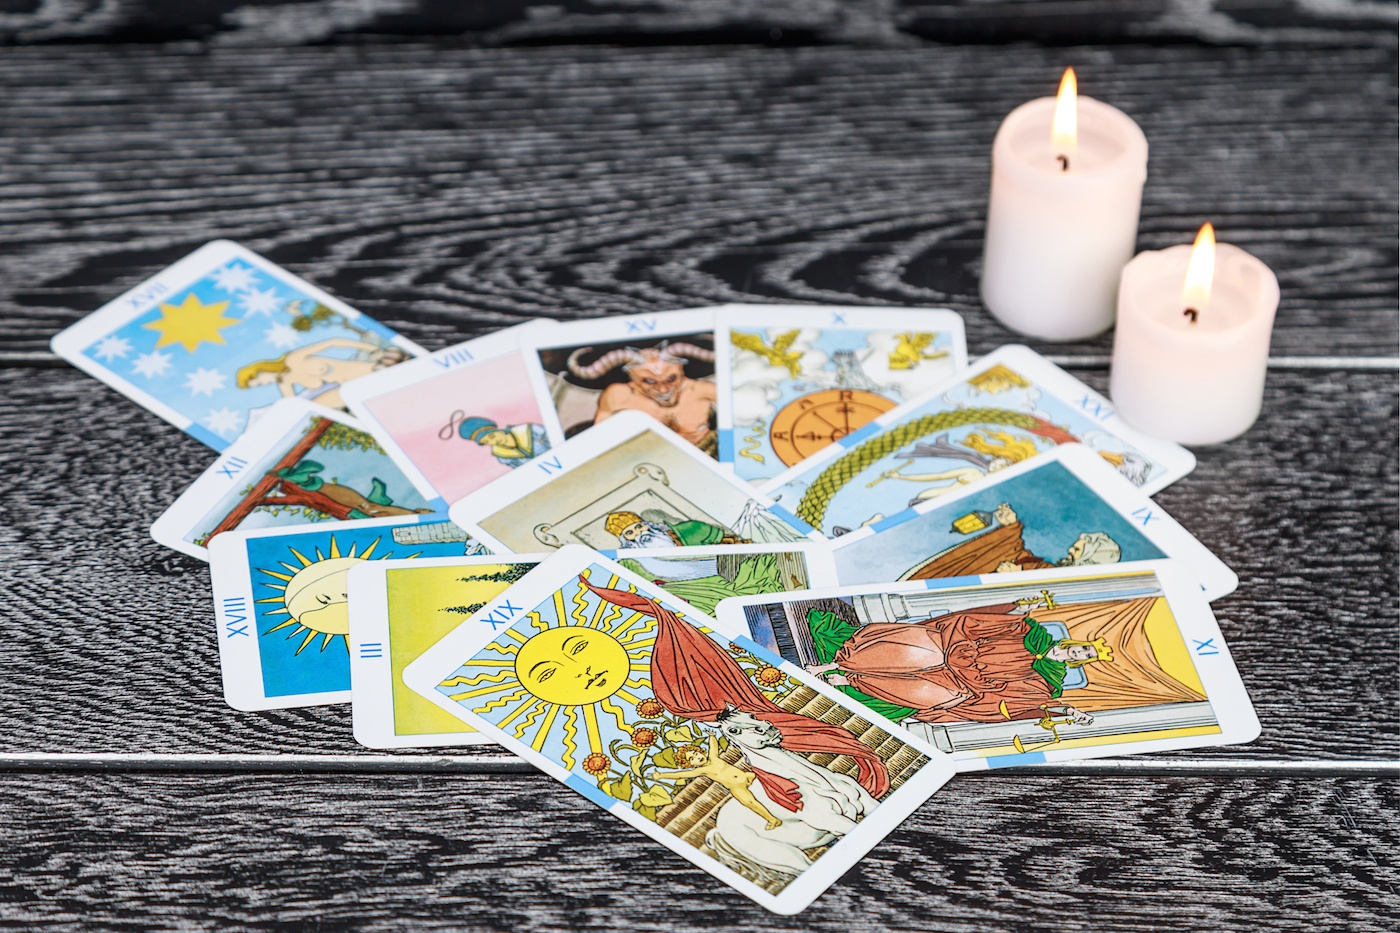 5 ways to find the tarot card that best represents you, according to an energy worker